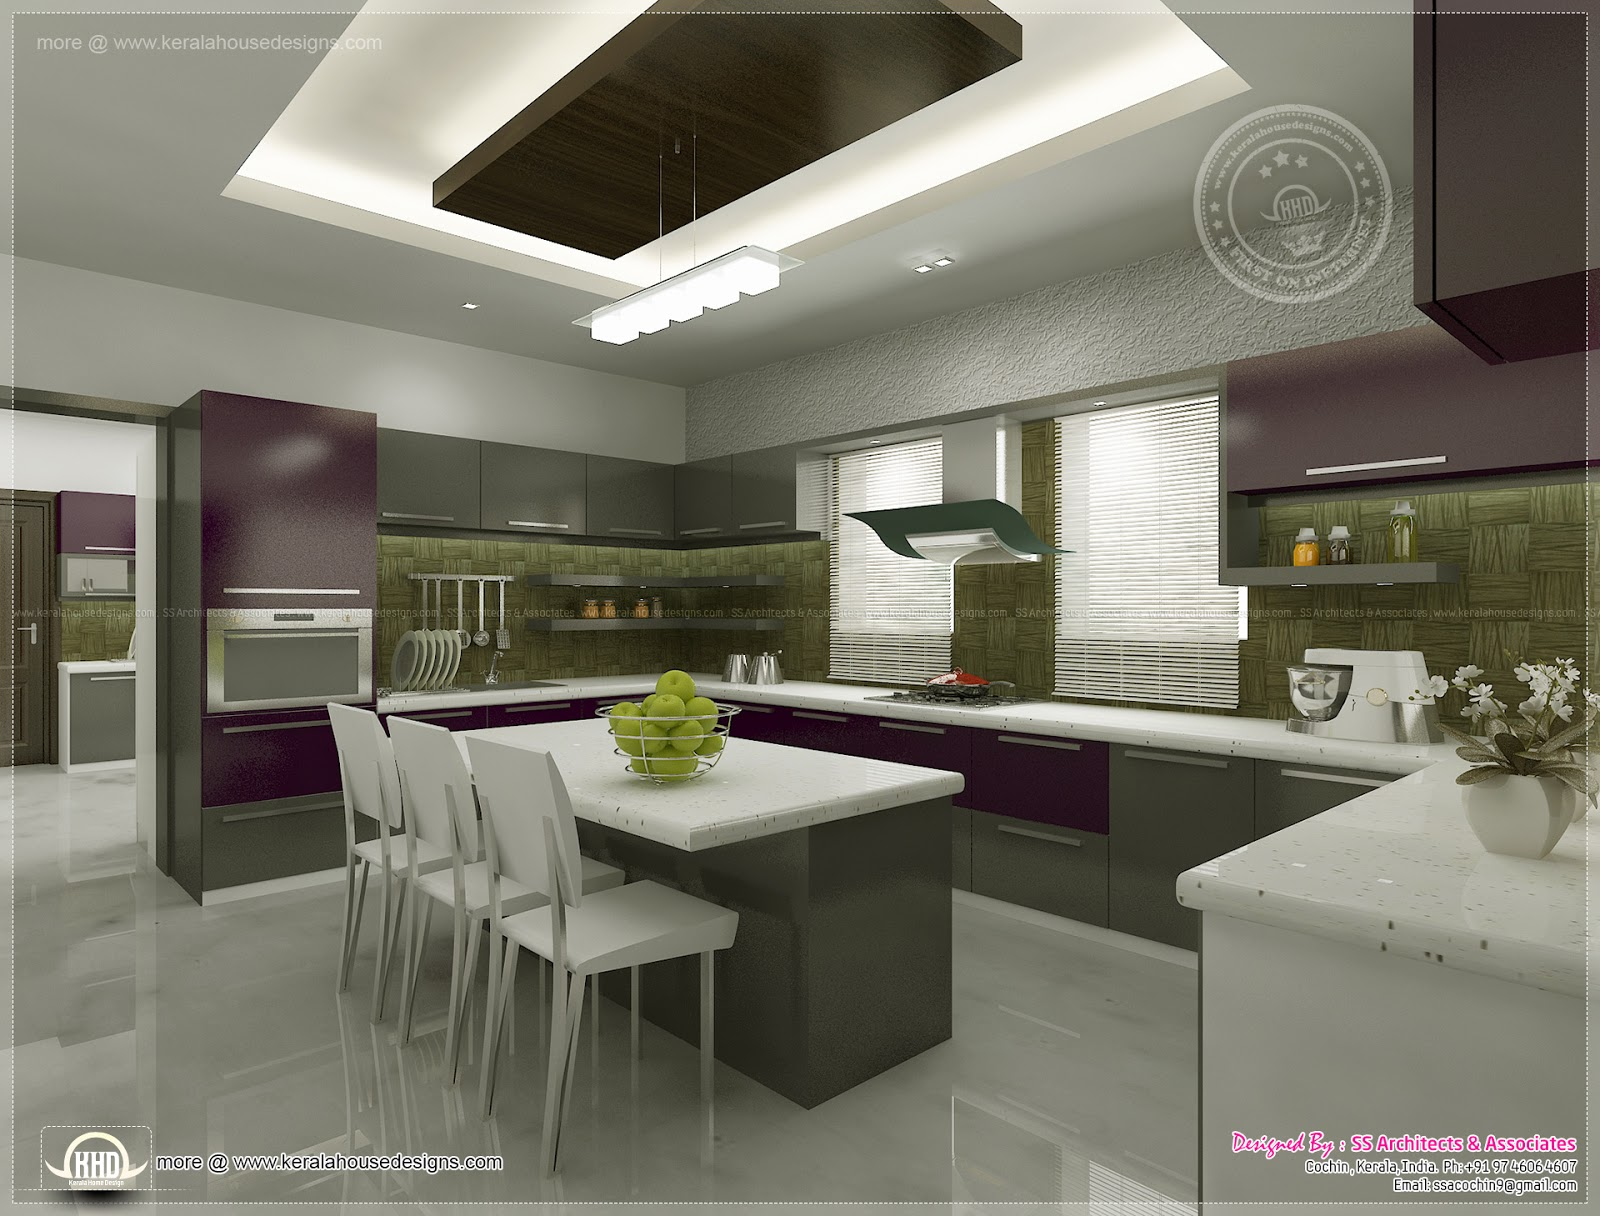 Kitchen interior views by ss architects cochin kerala - Home interior design kitchen pictures ...